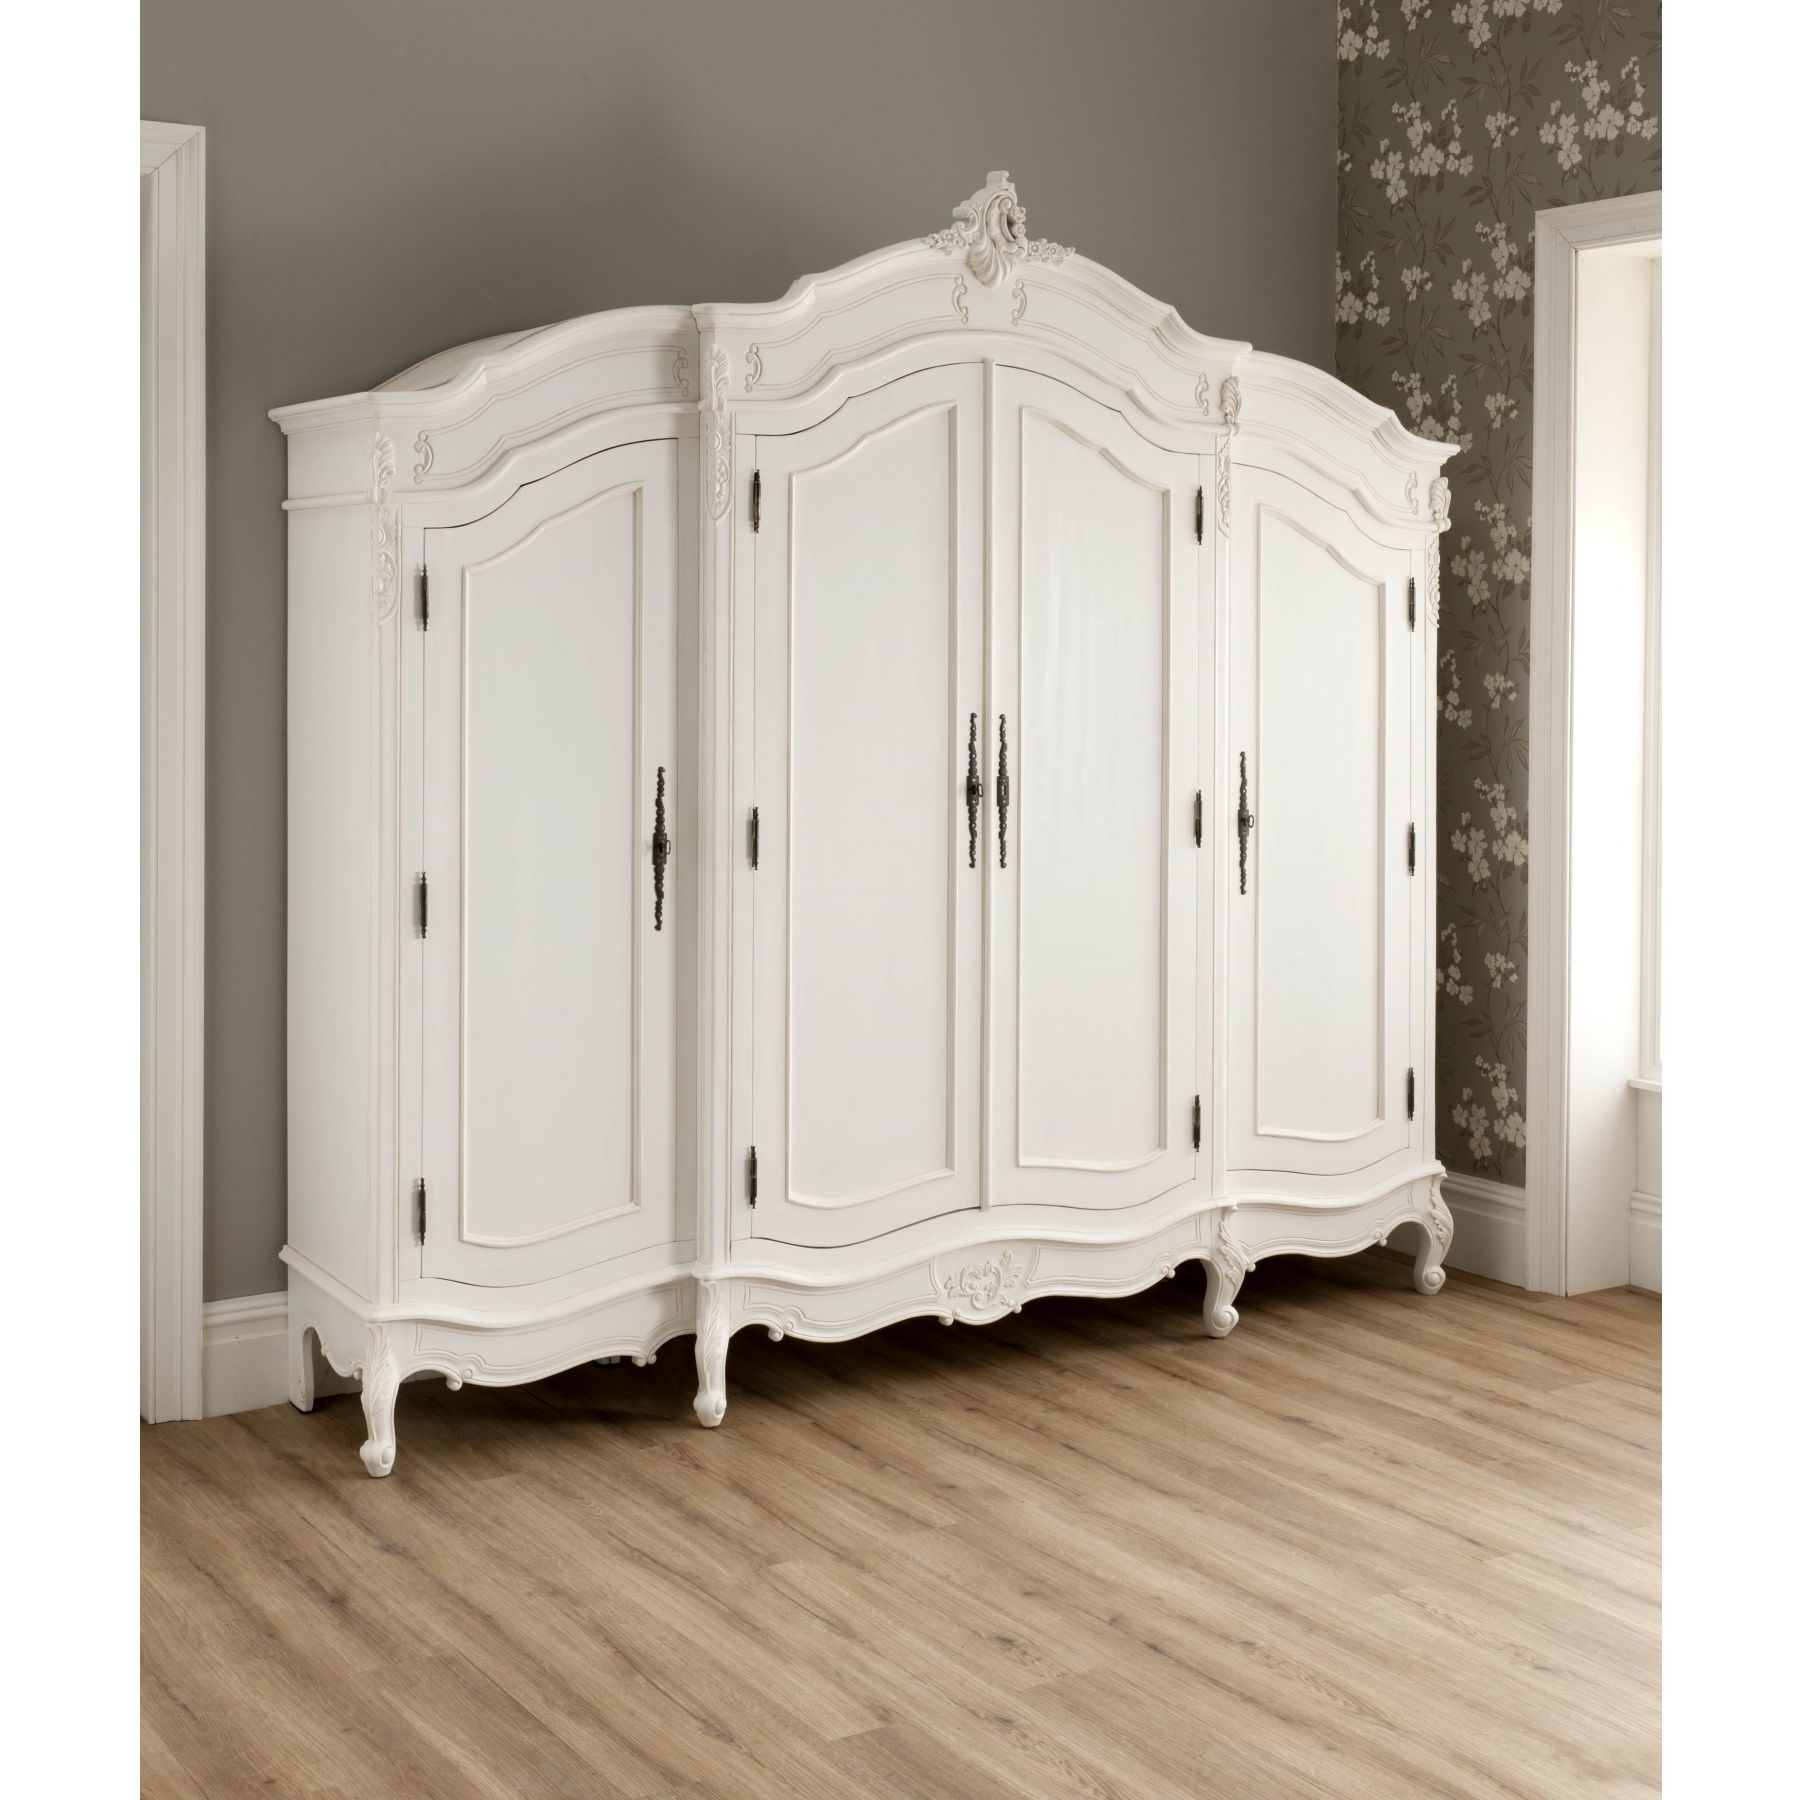 Antique Wardrobes: Vintage French Décor Ideas – Fif Blog Regarding Most Current French White Wardrobes (View 3 of 15)